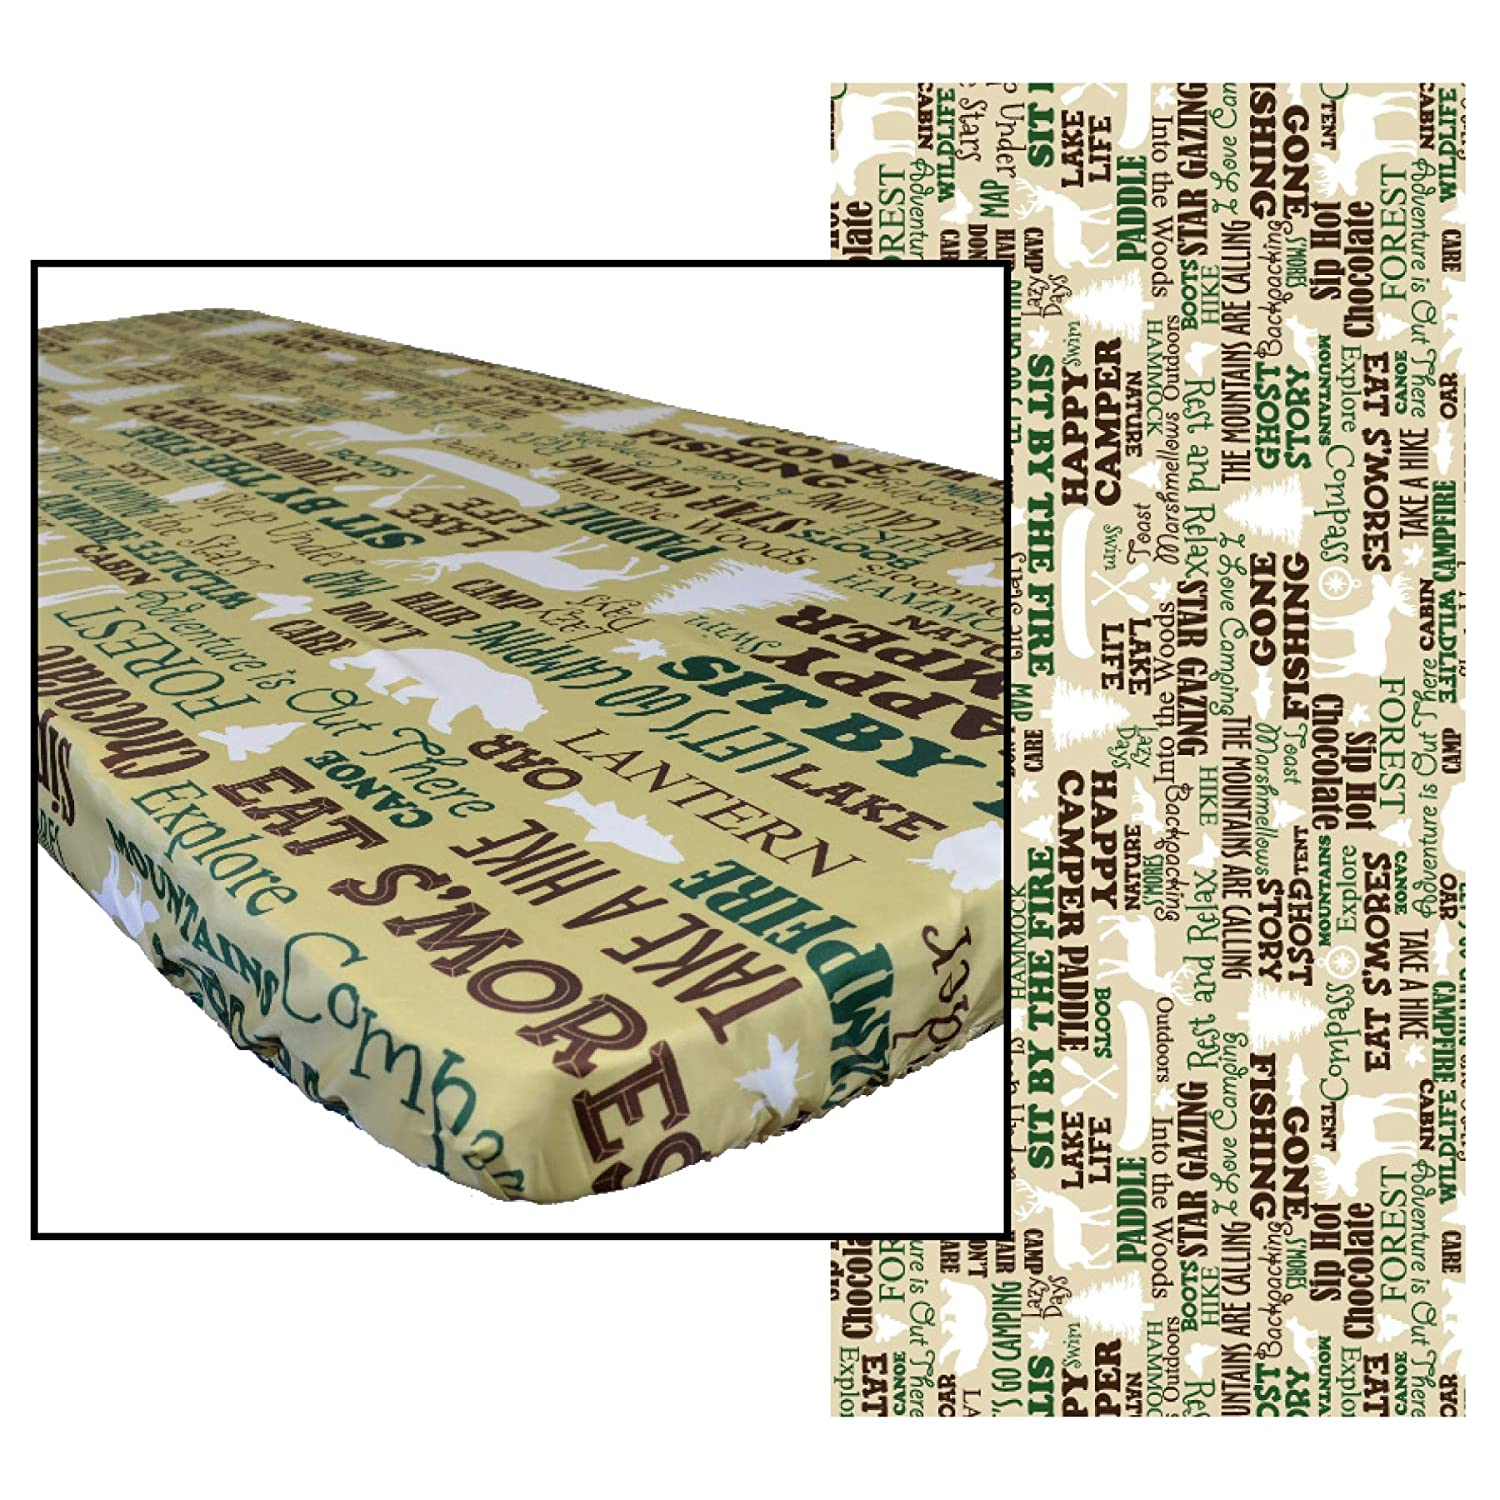 In the Breeze 8004 Rustic Camping 30 Inch x 72 Inch Fitted Tablecloth 6ft 30in x 72in ,